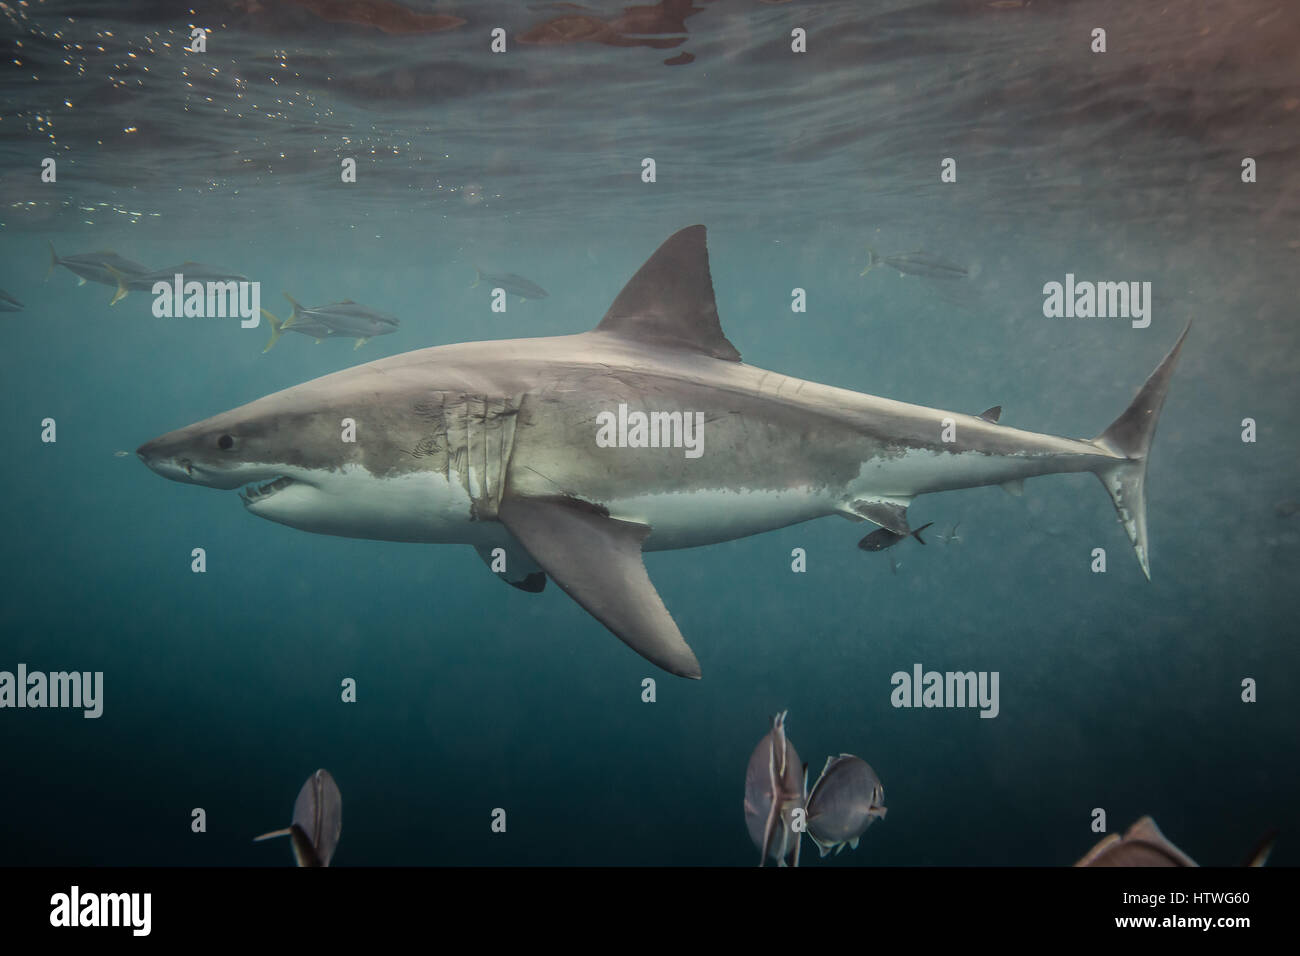 Great White Shark (Carcharodon carcharias) - Stock Image